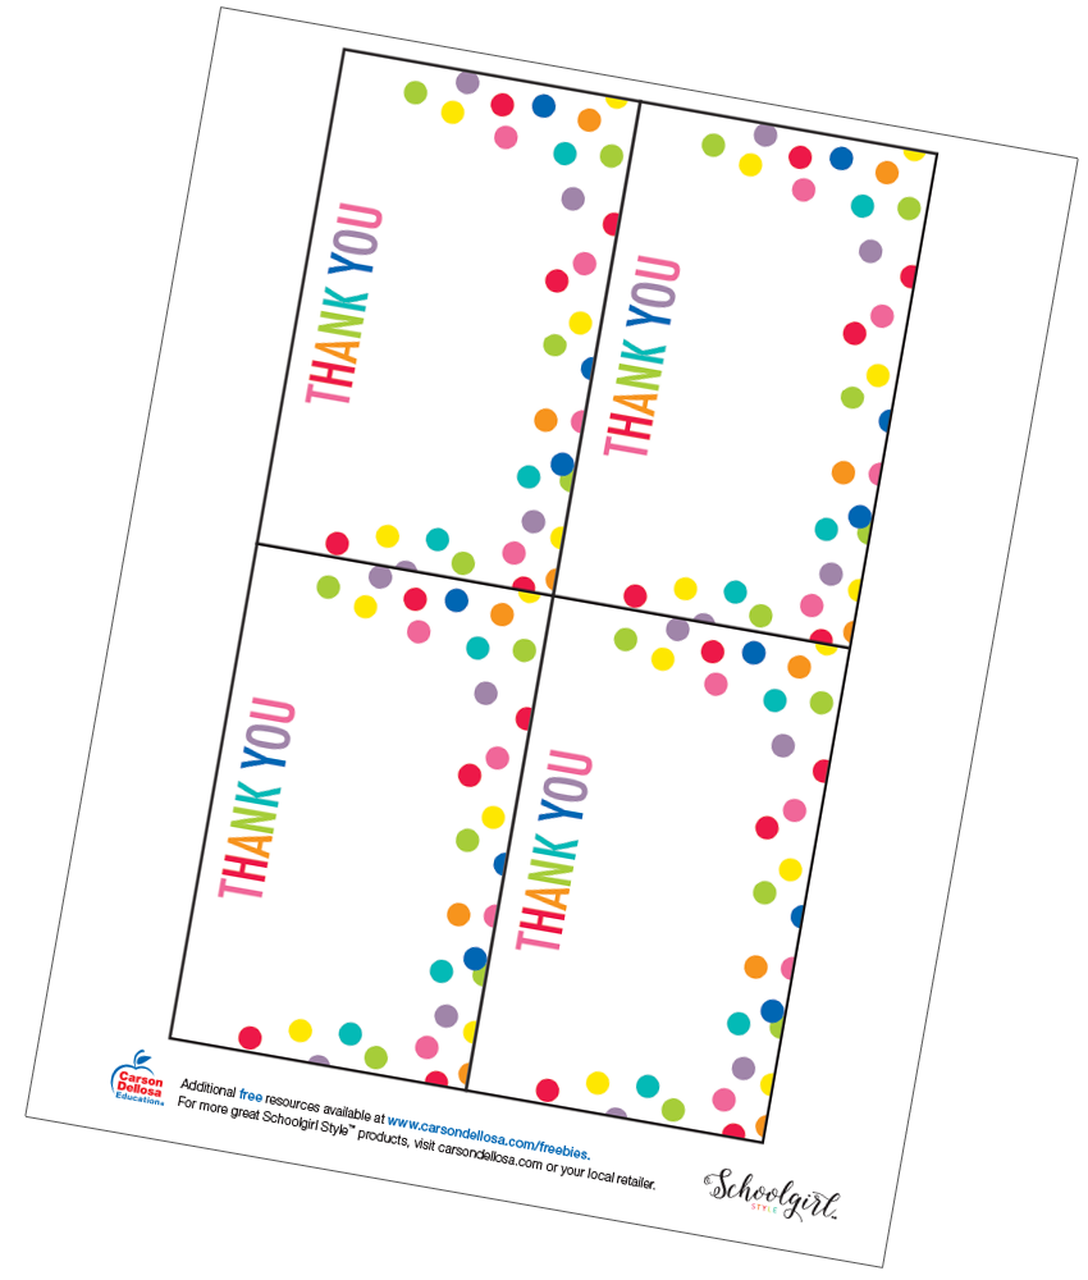 graphic regarding Thank You Cards Free Printable named Schoolgirl Structure: Confetti Thank Oneself Playing cards Absolutely free Printable